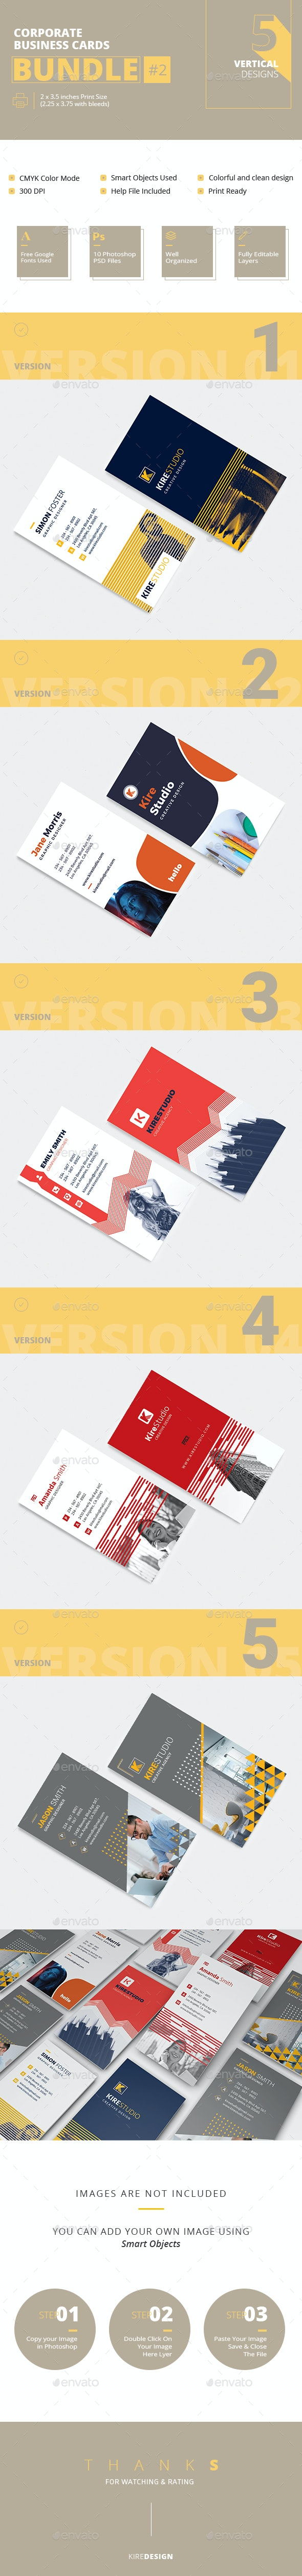 Business Cards Bandle #2 - 5 Vertical Designs - Business Cards Print Templates